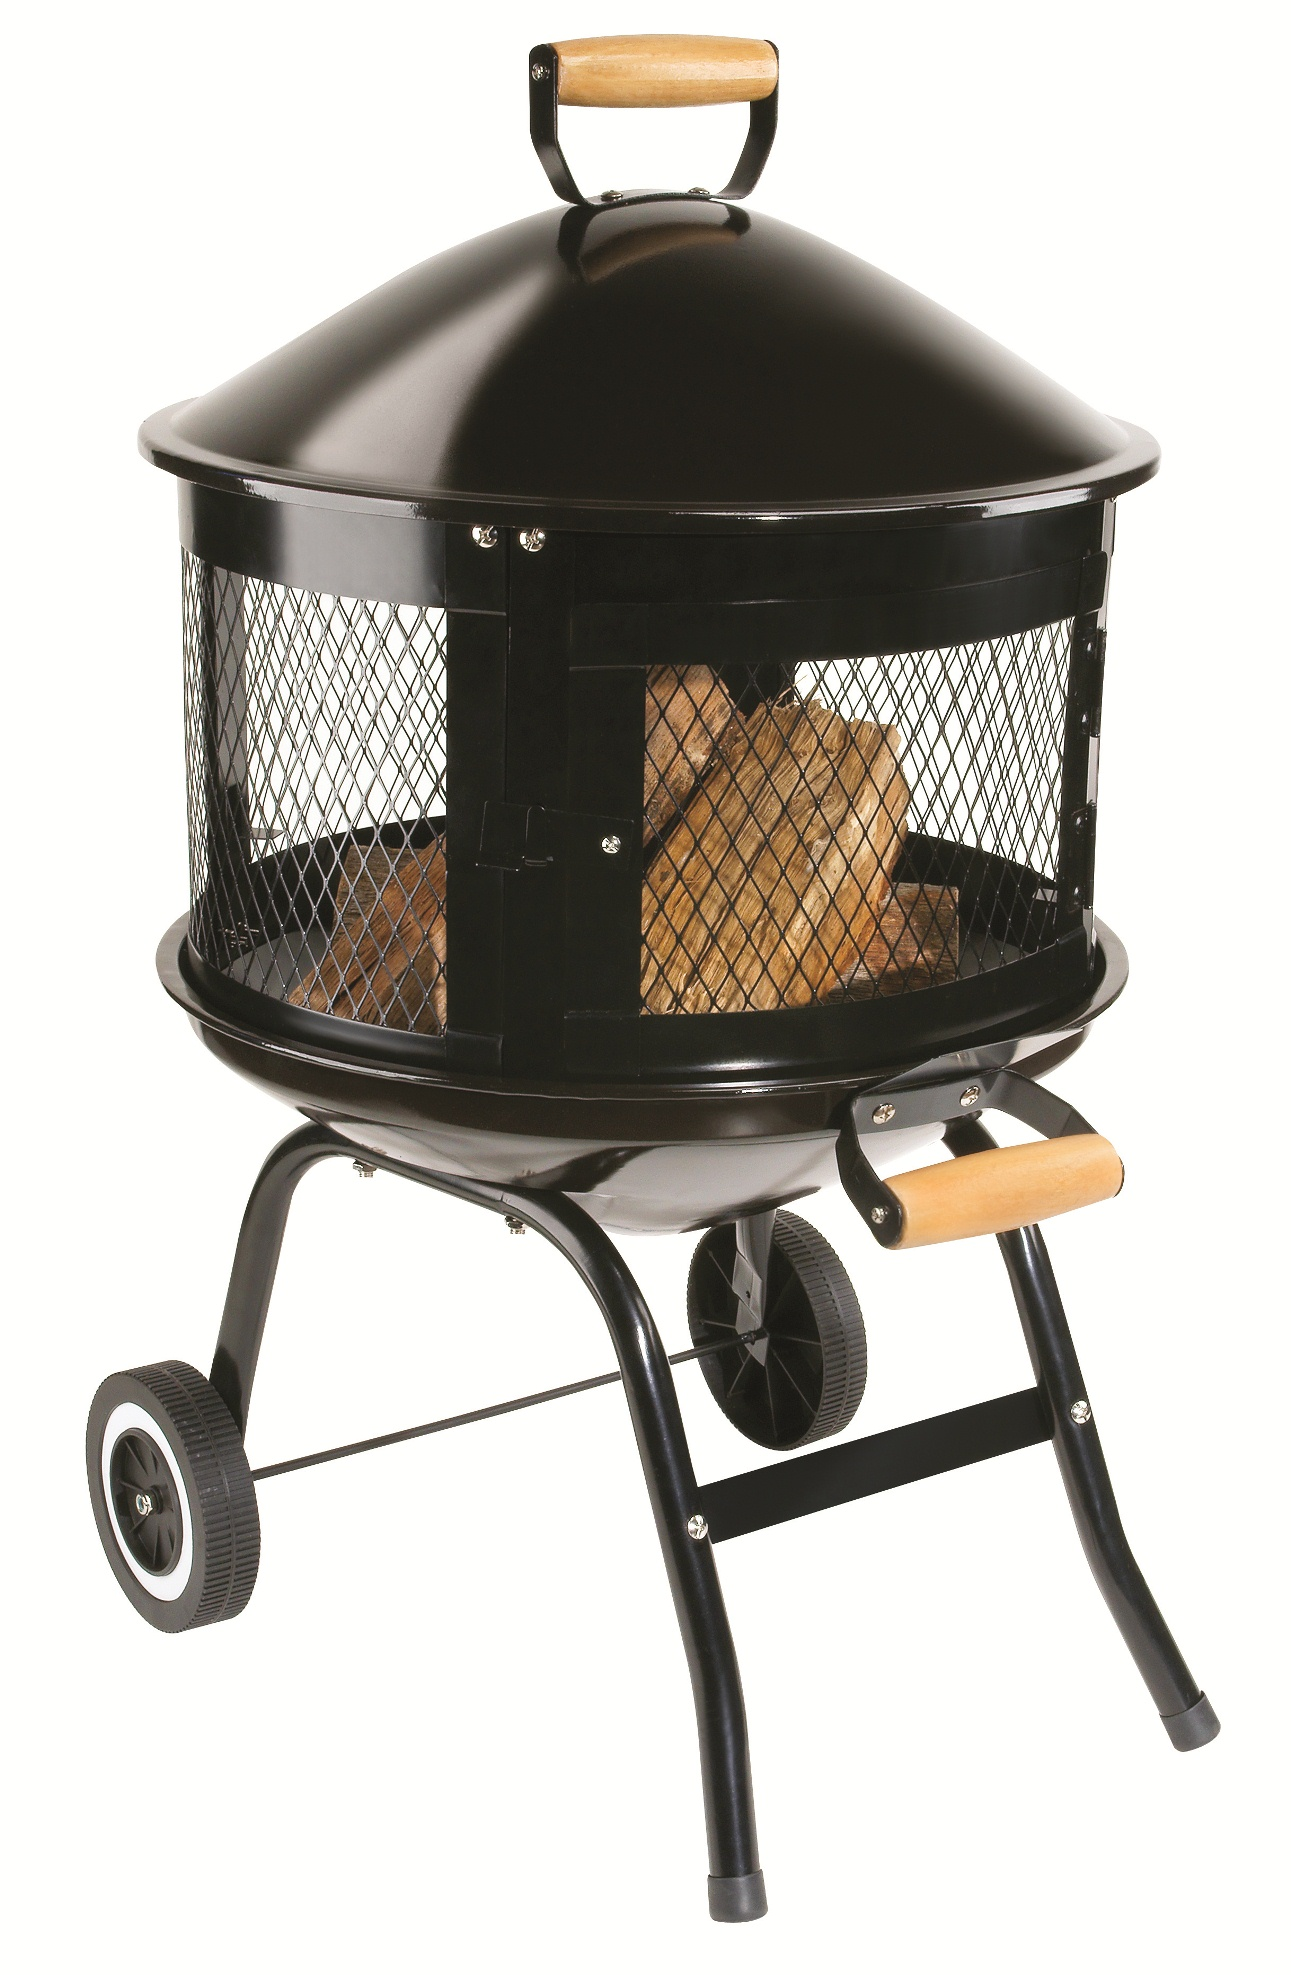 Lt P Gt Porcelain Coated Lid With Wood Handle Lt X2f P Gt Lt P Gt Enclosed Spark Screen With Hin Fire Pit Seating Modern Fire Pit Gazebo With Fire Pit